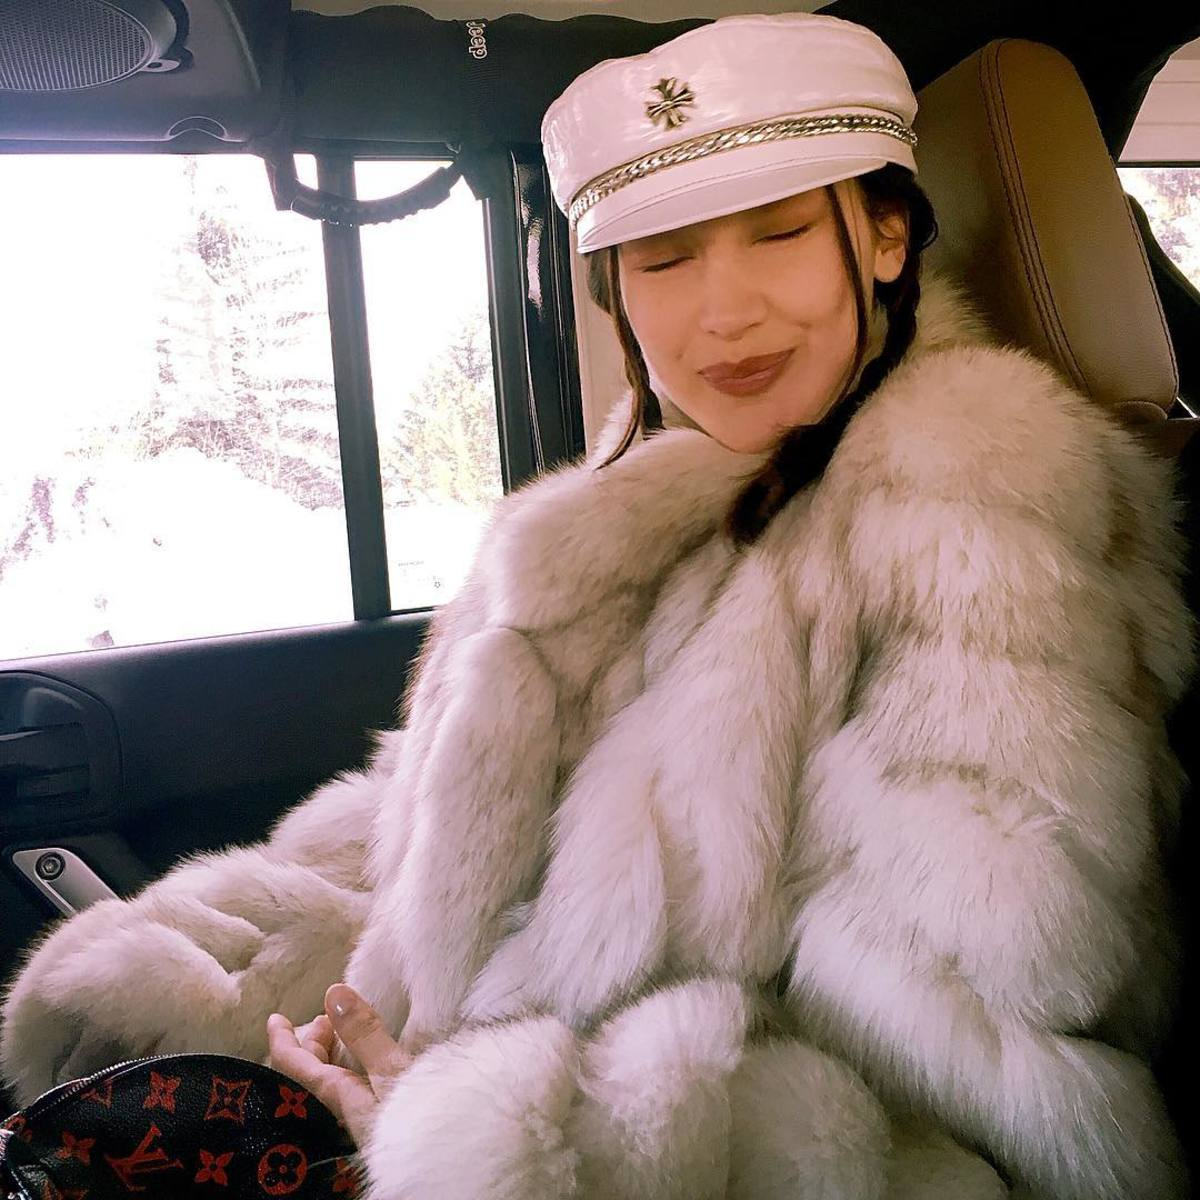 Bella Hadid Provides A Glimpse Of Her Chrome Hearts Collection On